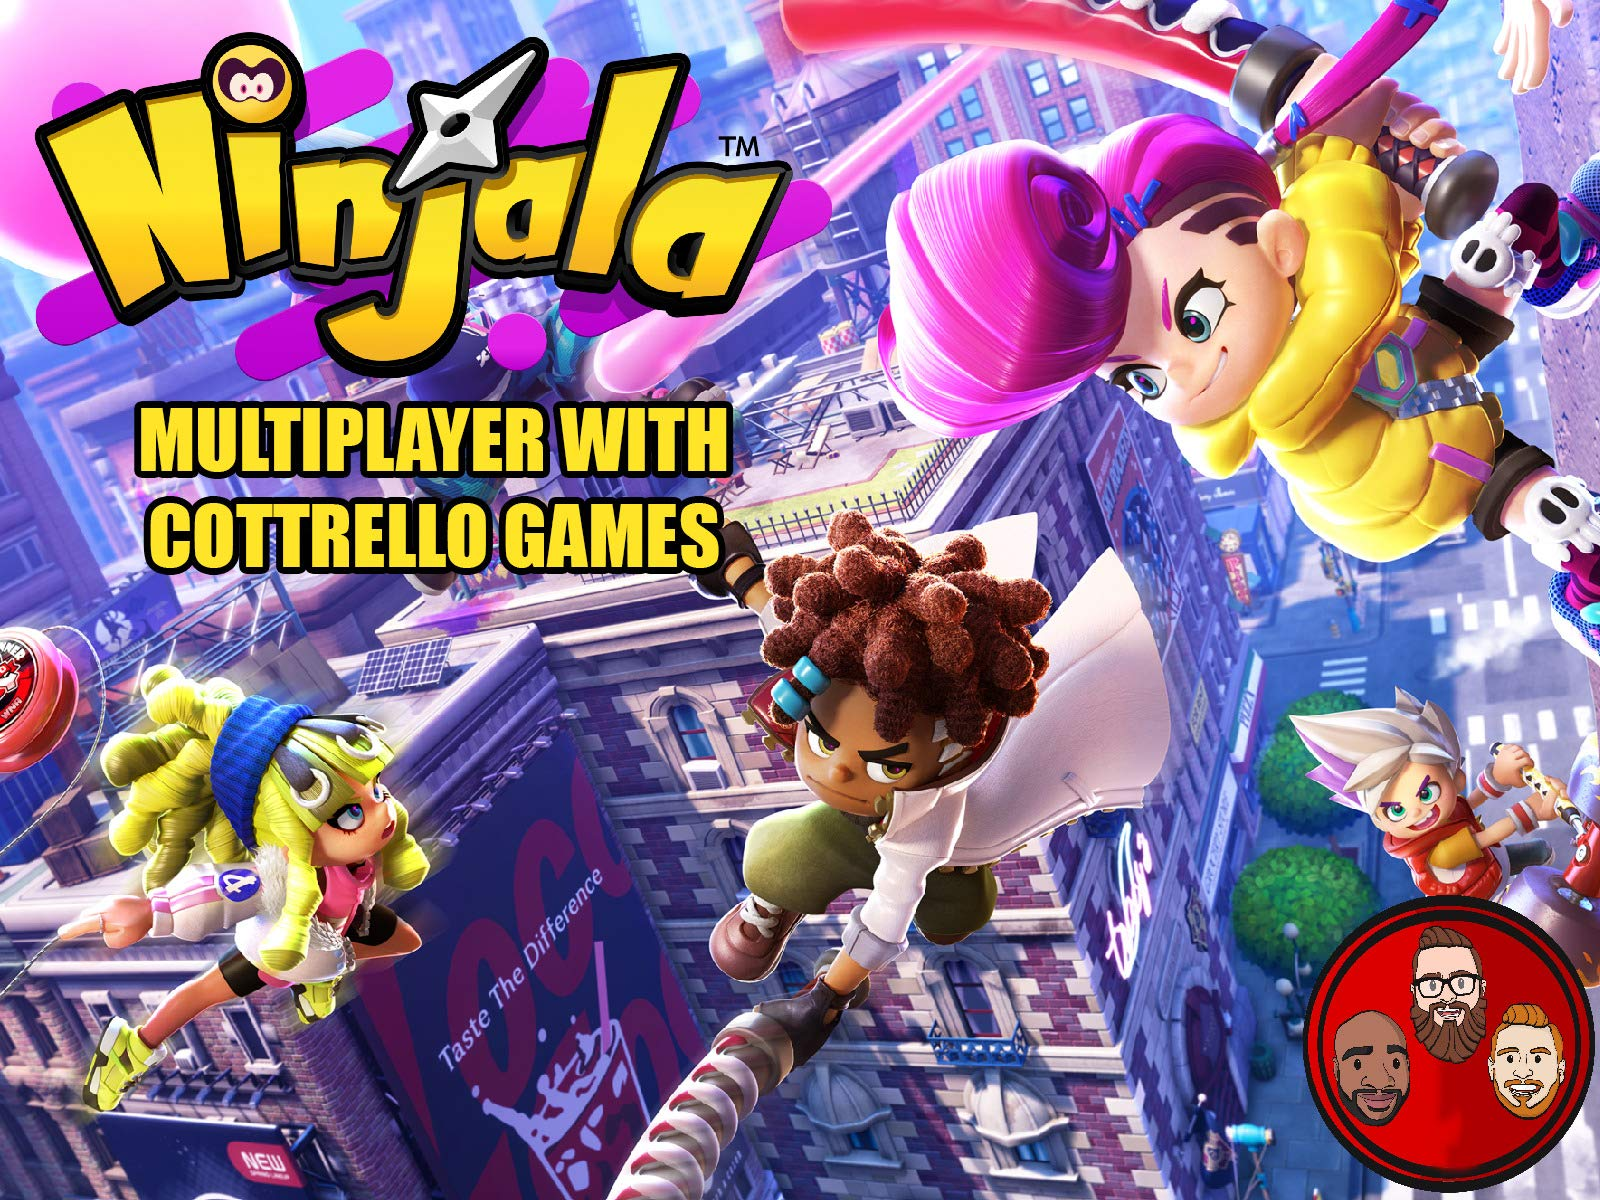 Ninjala Multiplayer with Cottrello Games